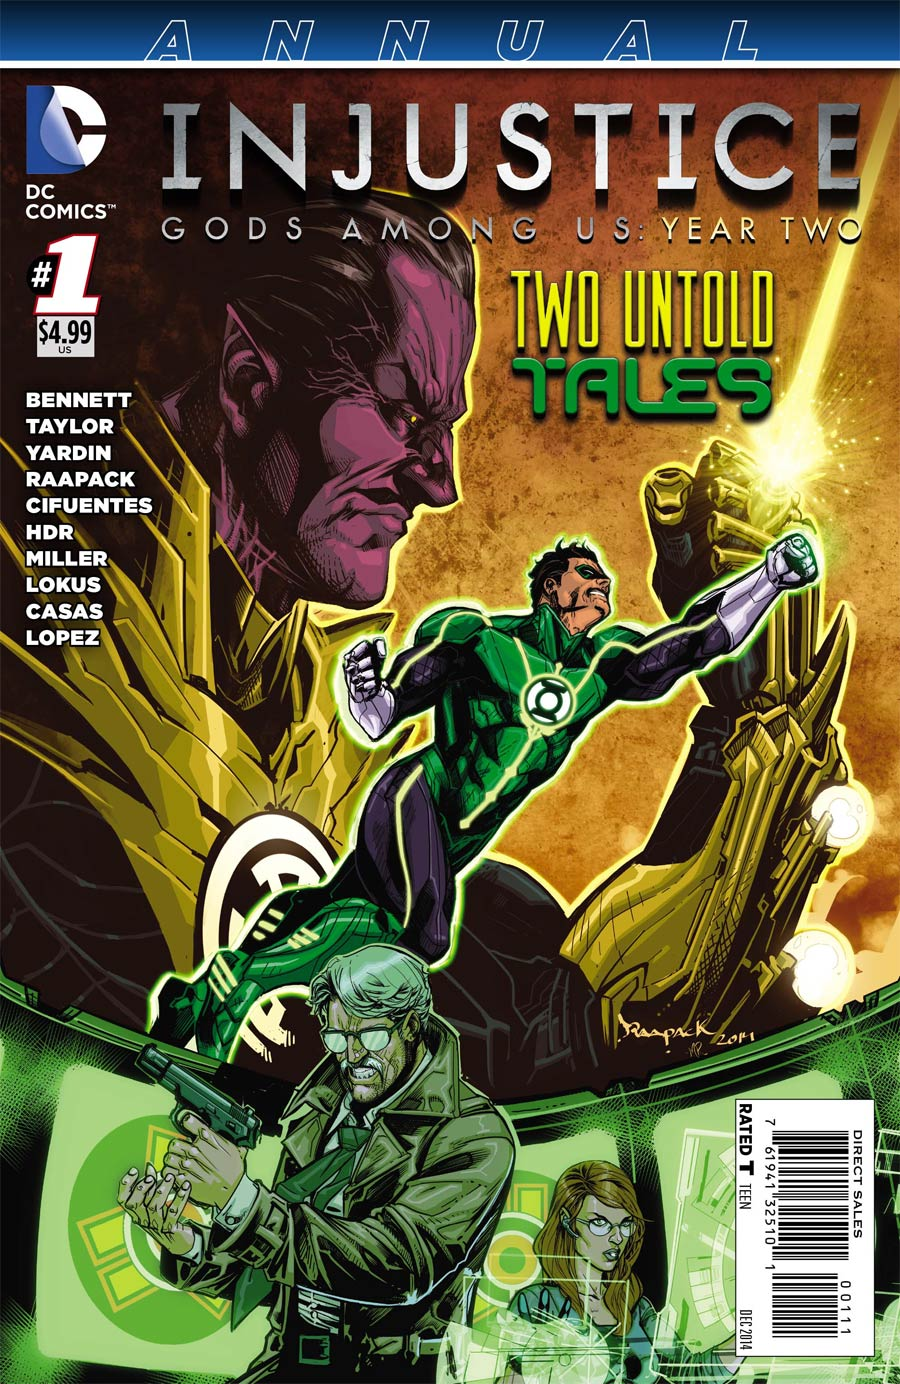 Injustice Gods Among Us Year Two Annual #1